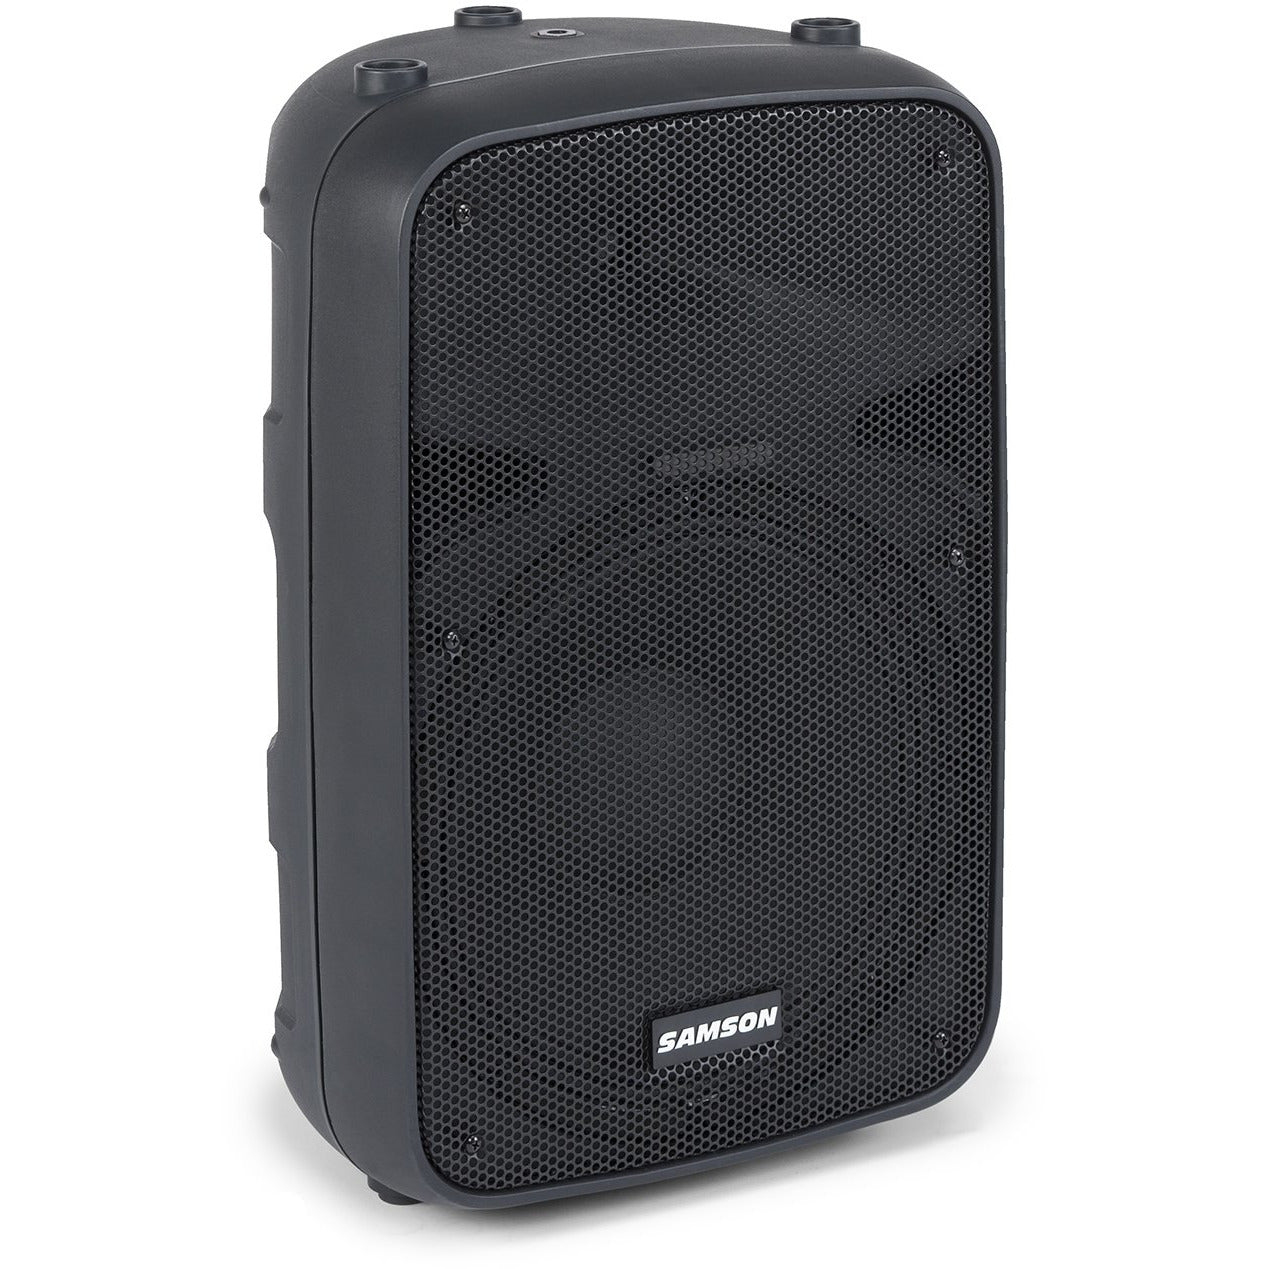 Samson AURO X12D Class D 2-Way active,1000w, R.A.M.P DSP technology